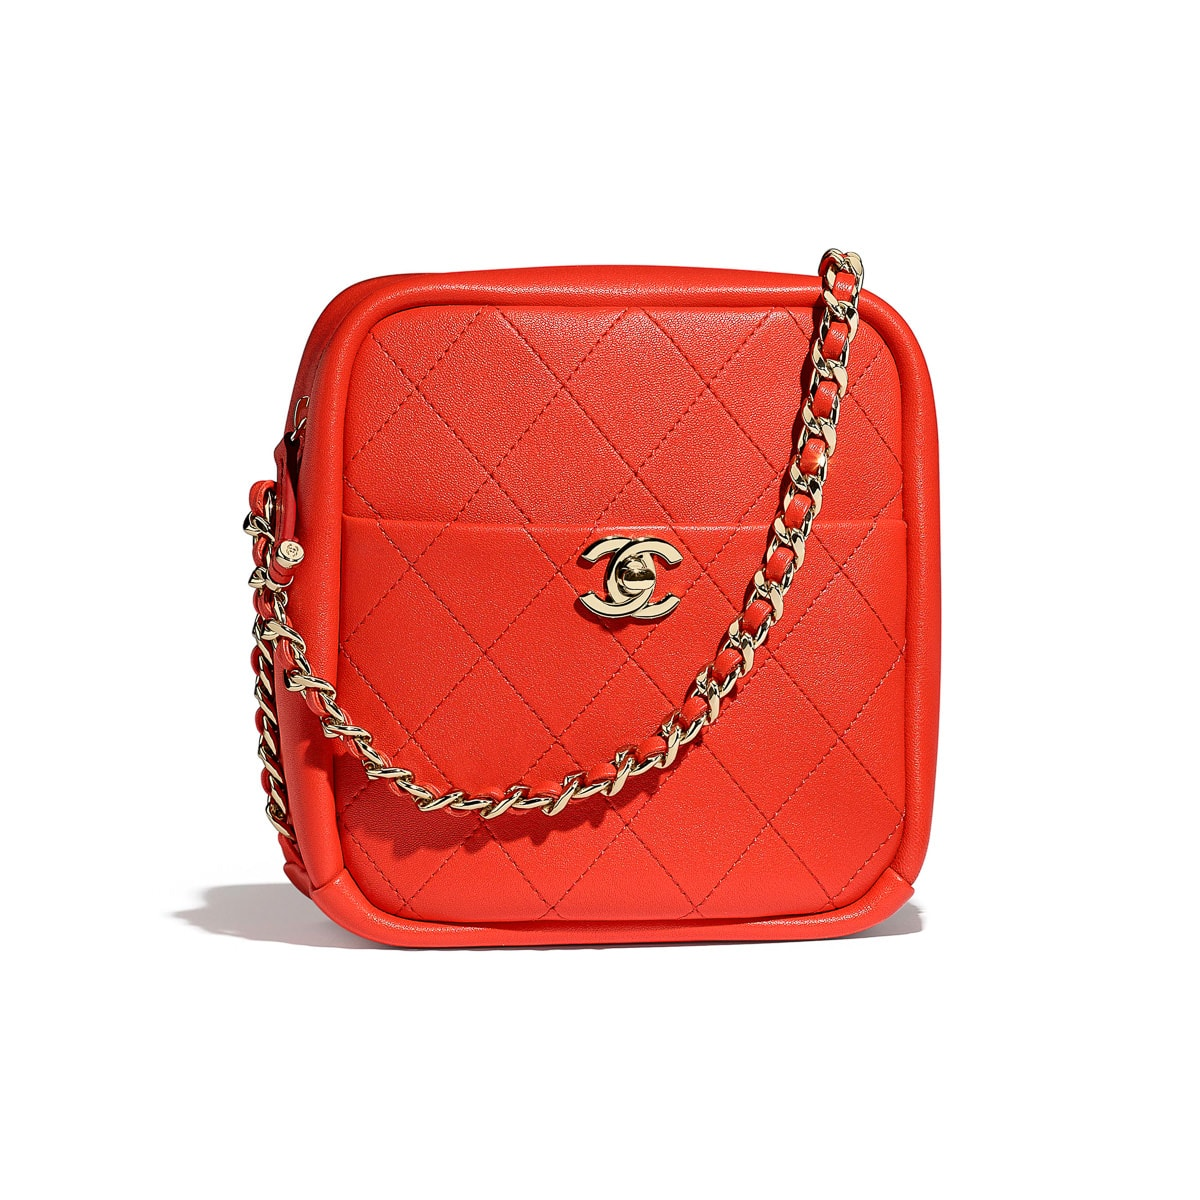 a5feed42c62e We've Got Over 100 Pics + Prices of Chanel's Nautical ... -. Chanel Cruise  2019 Seasonal Bag Collection ...